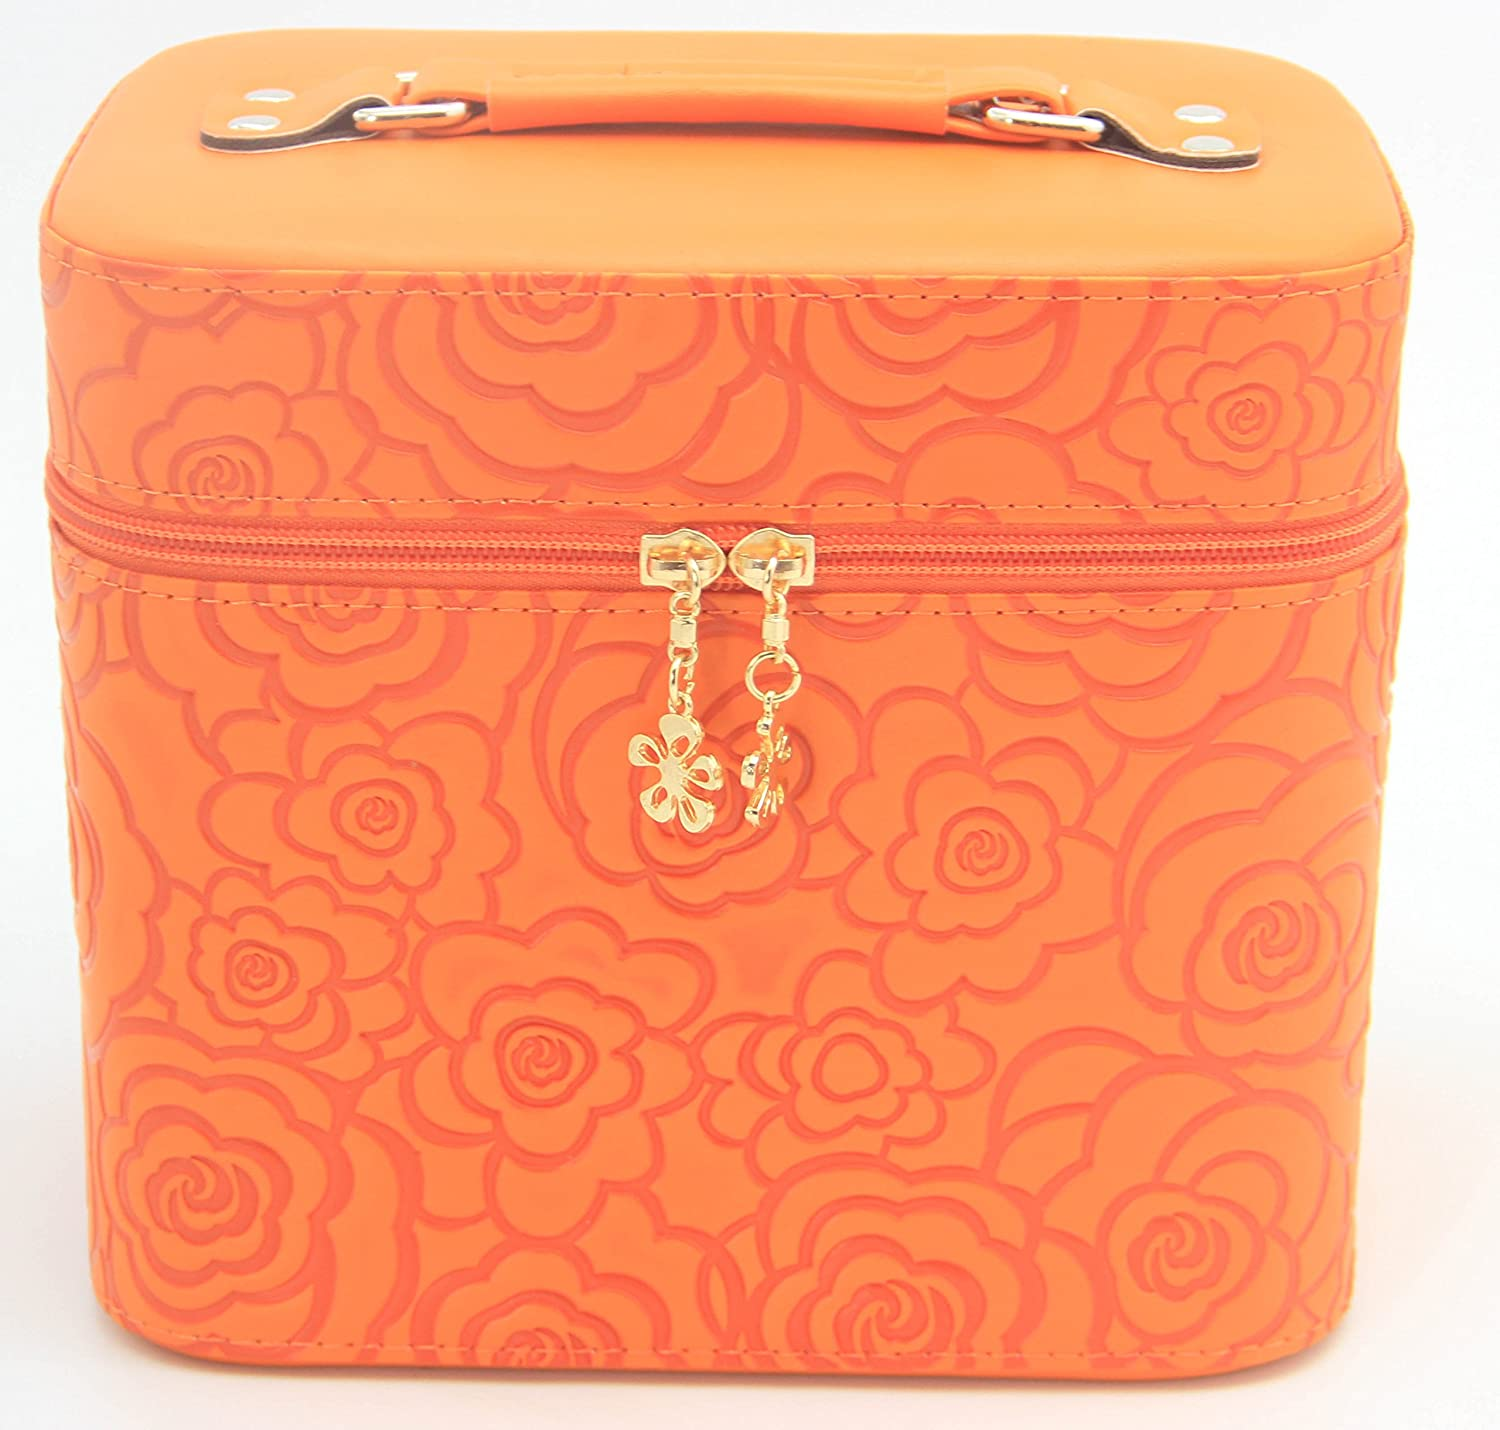 d5f0af854218 HOYOFO 2-Piece Set 3D Rose Pattern Large Makeup Case Travel Make Up Bag  Cosmetic Train Cases,Orange